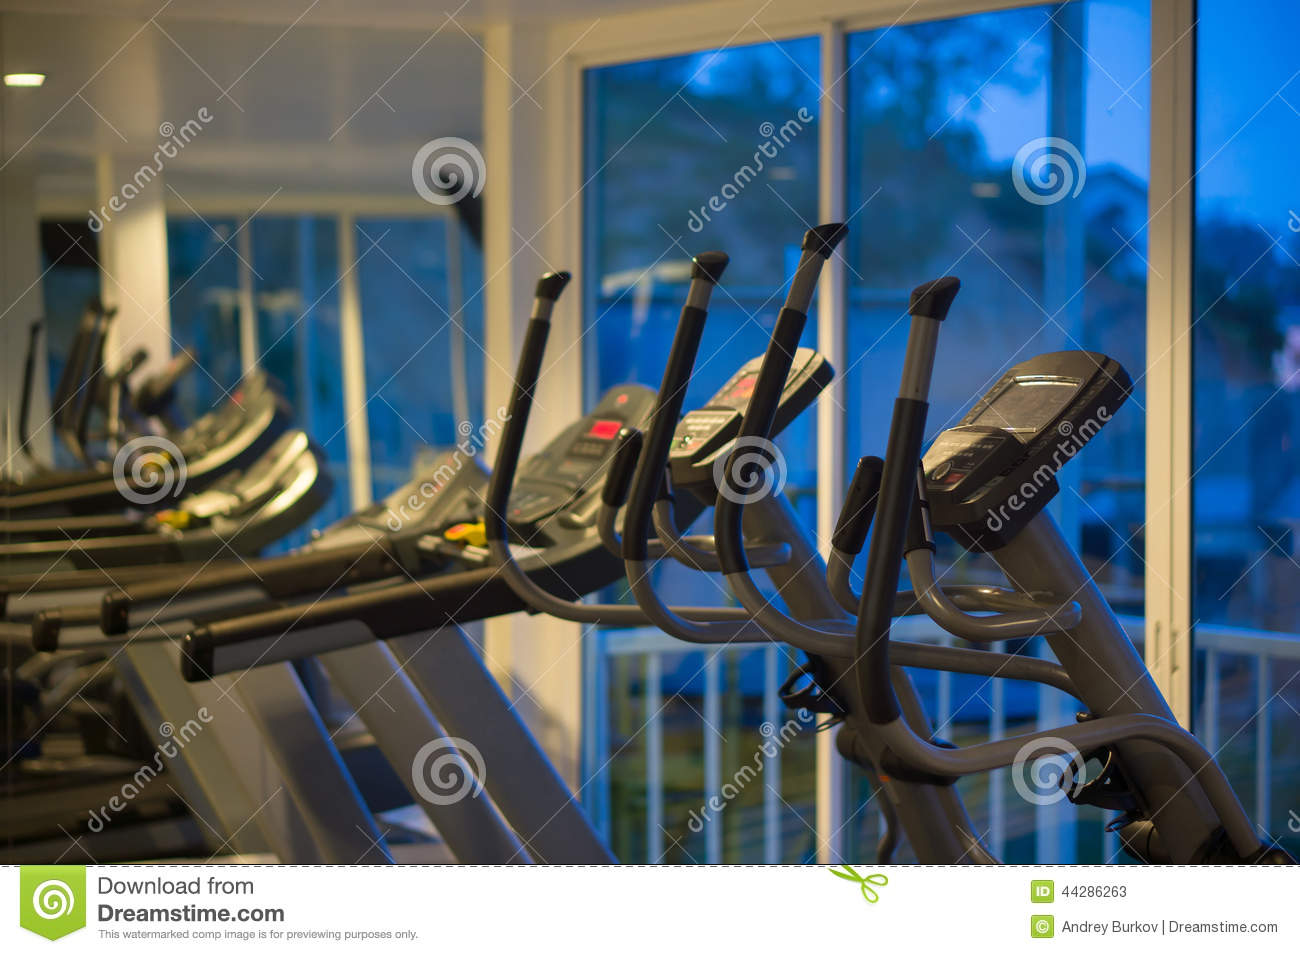 Elliptical cross trainers in a fitness gym at evening